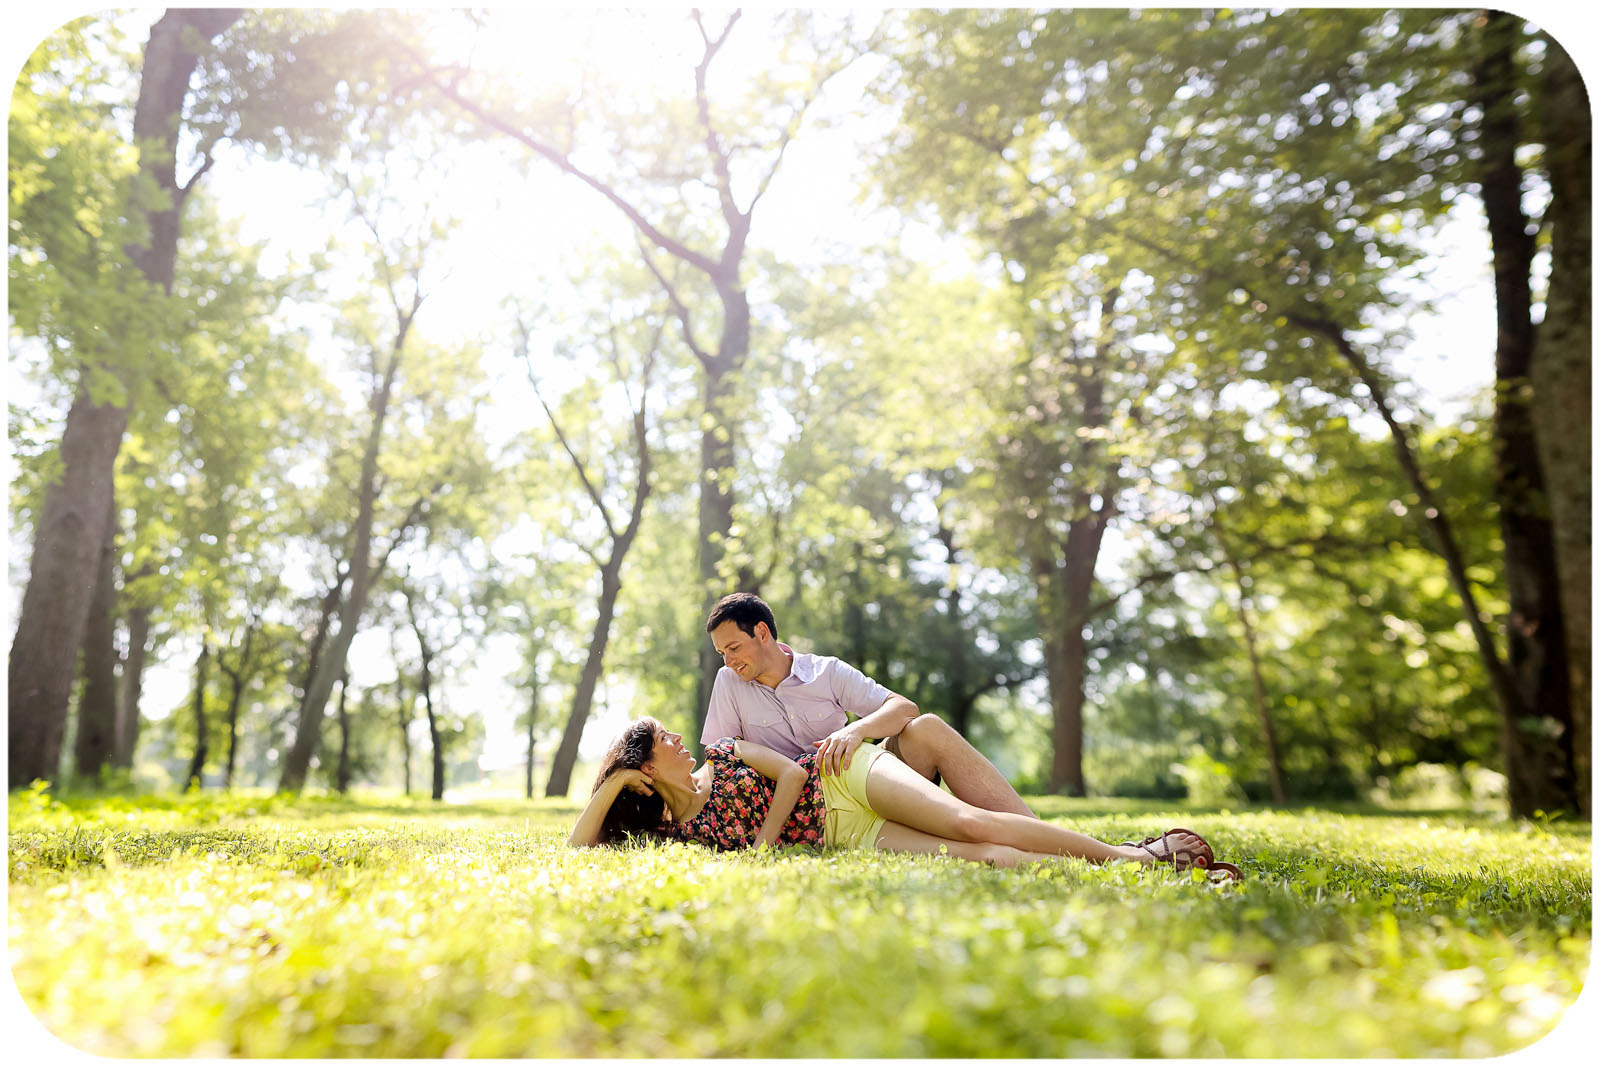 Brice + Samantha Mills Race Park Columbus, IN Engagement Pictures 0.jpg